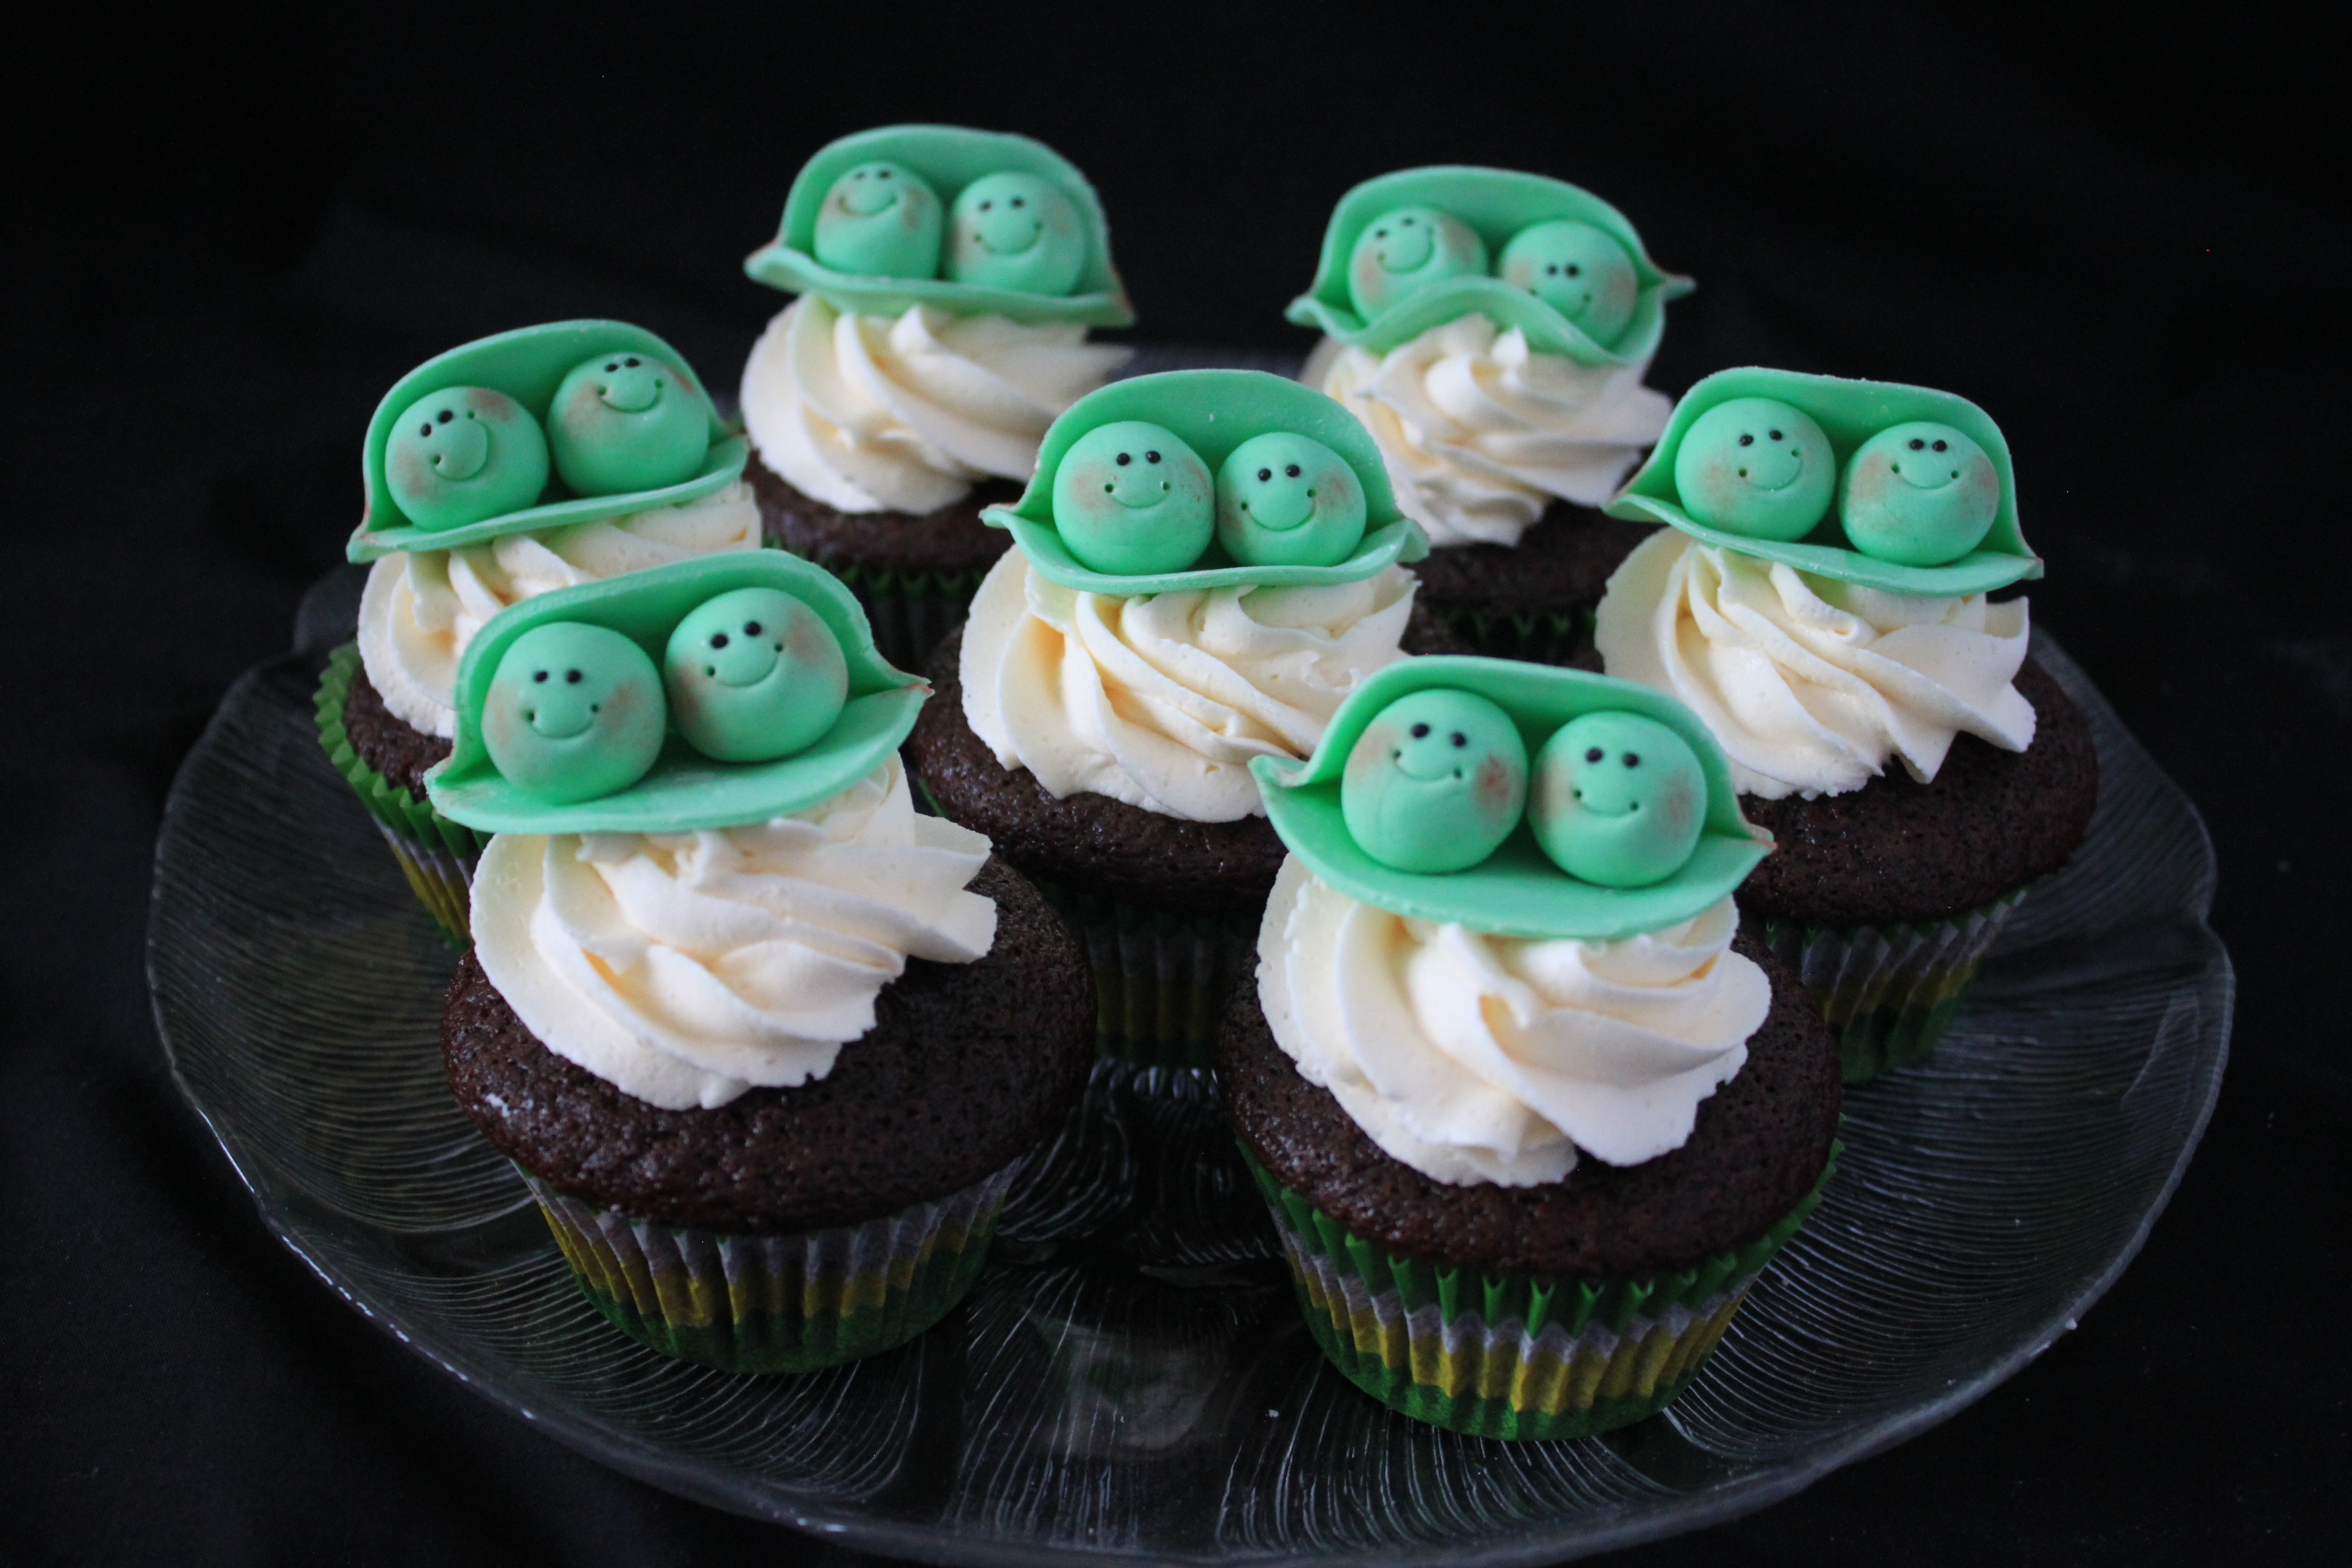 'Two peas in a pod' baby shower